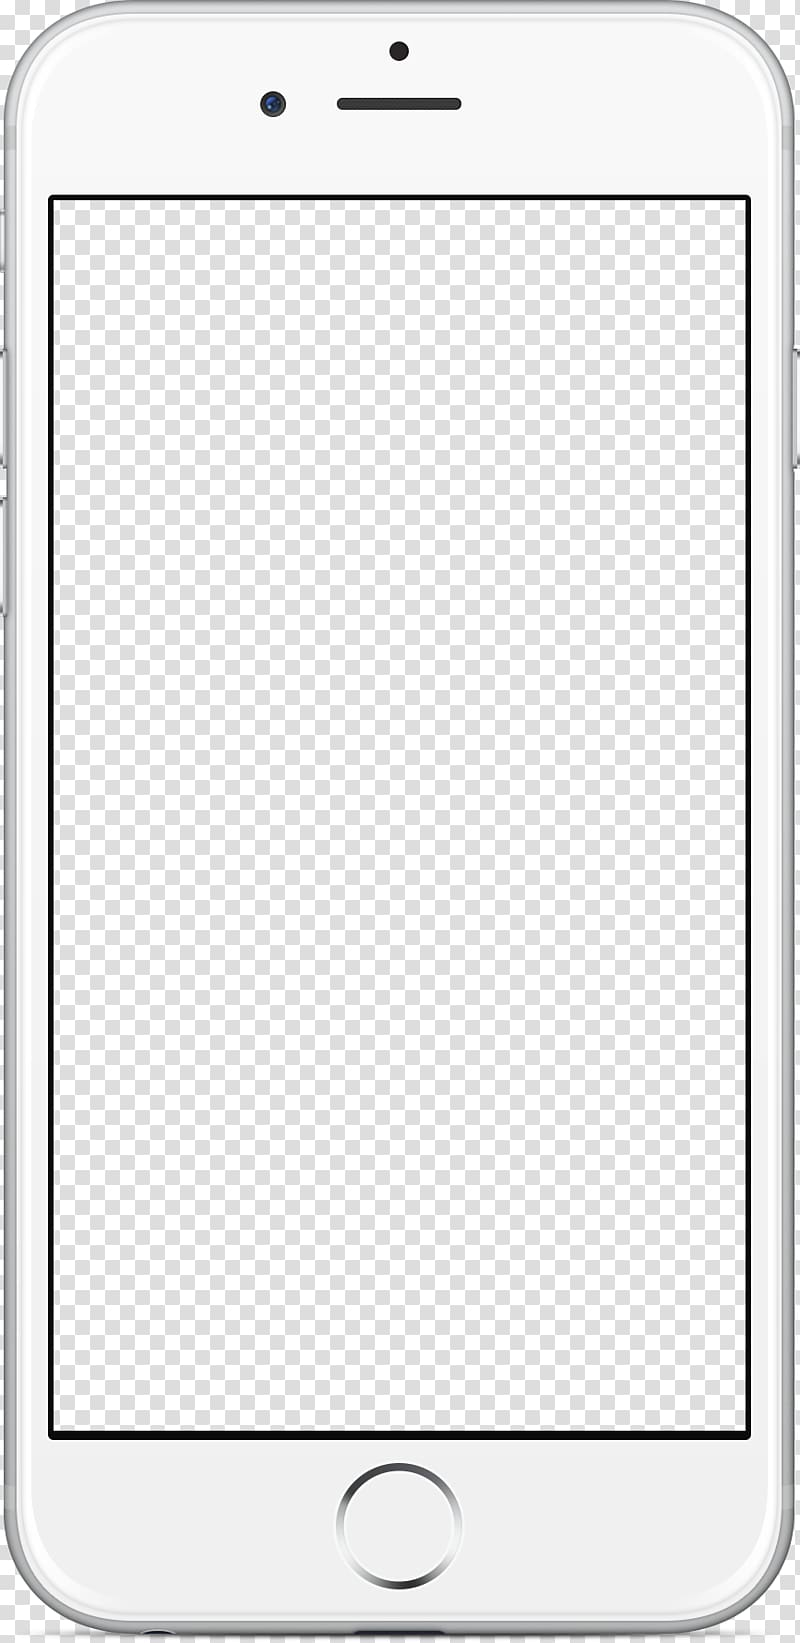 Iphone 6 frame clipart image black and white IPhone 6S Smartphone , Phone frame, gold iPhone 6 ... image black and white